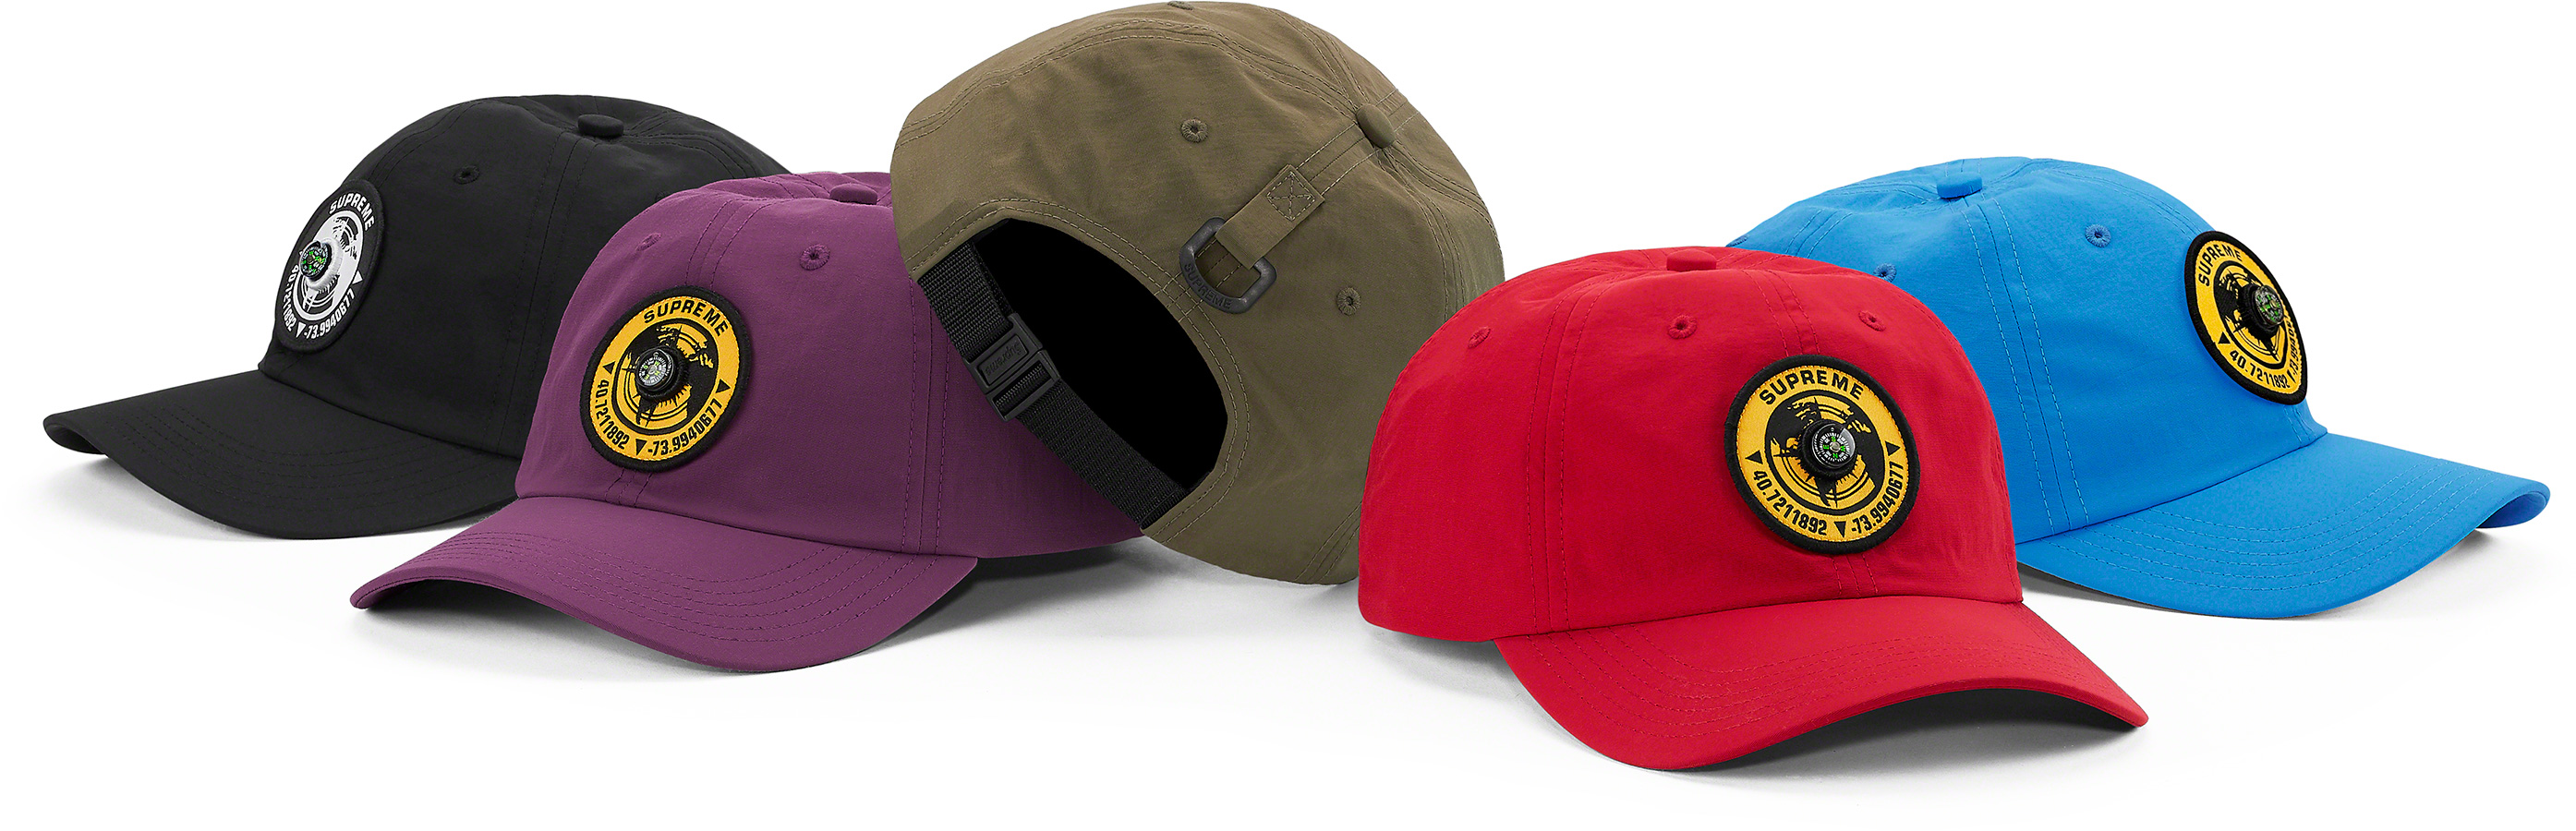 supreme-21ss-spring-summer-compass-6-panel